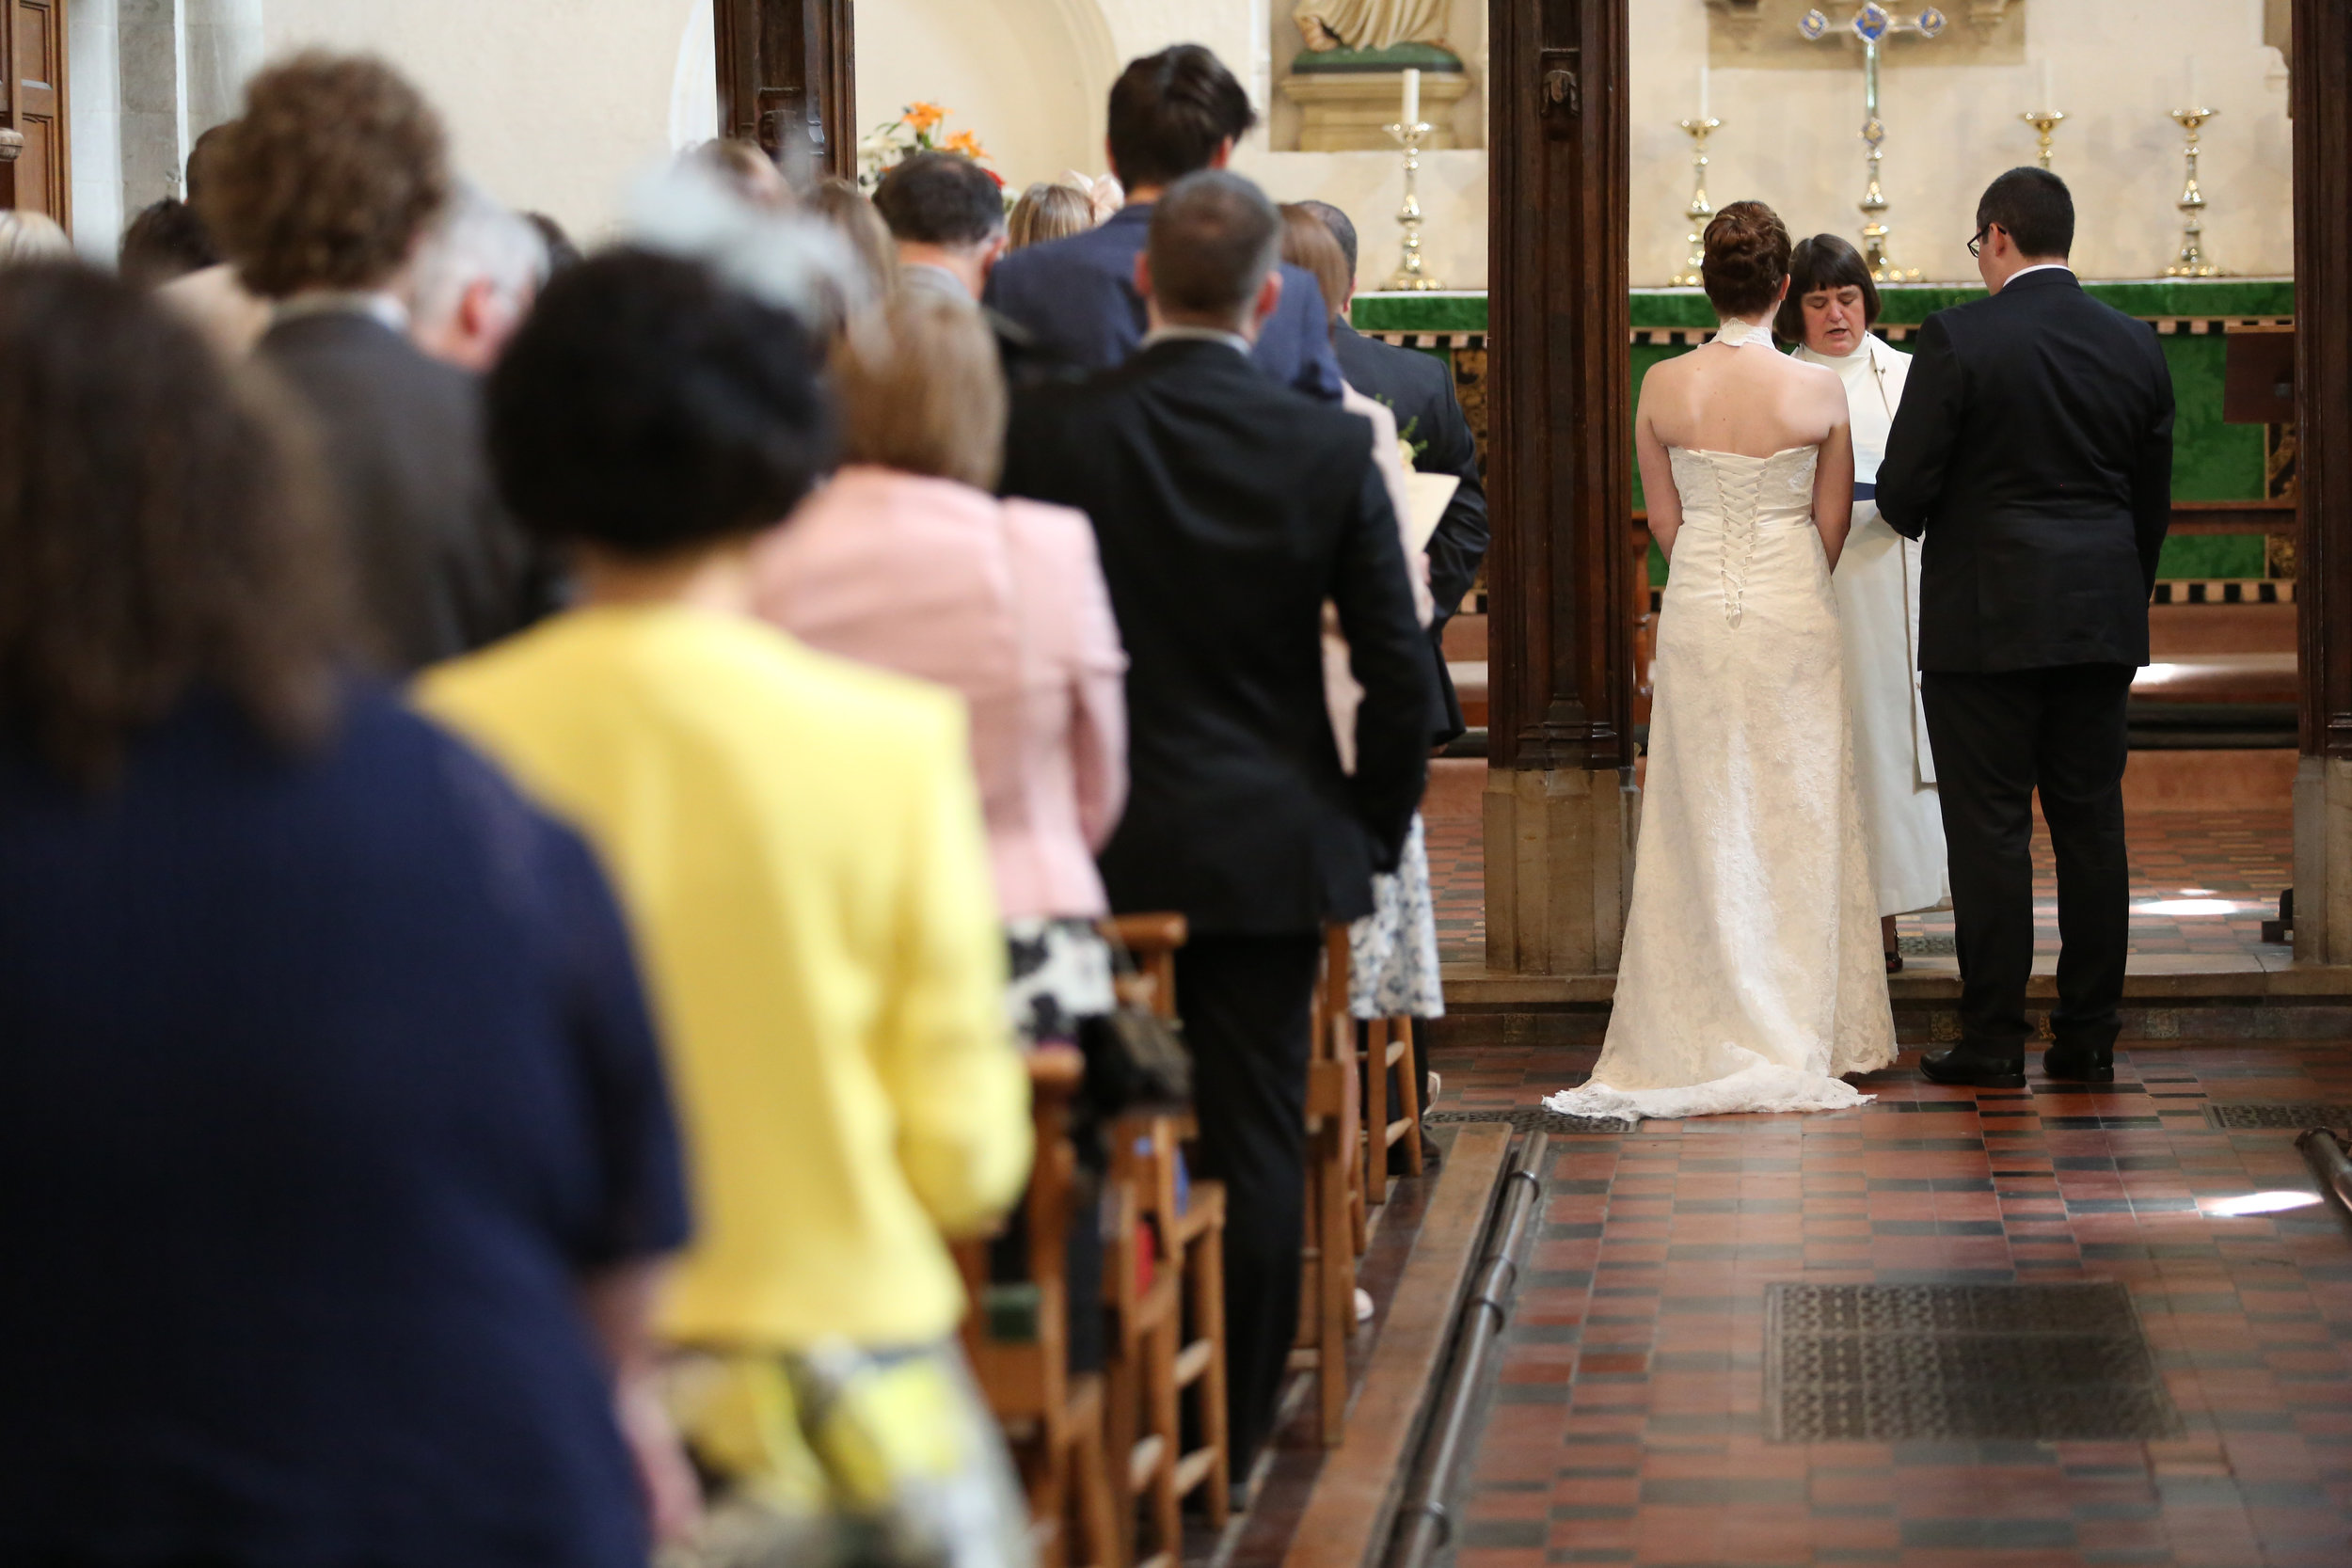 JELLYFISH WEDDING PHOTOGRAPHY THE PRIORY ST PETER CHURCH DUNSTABLE (21).jpg